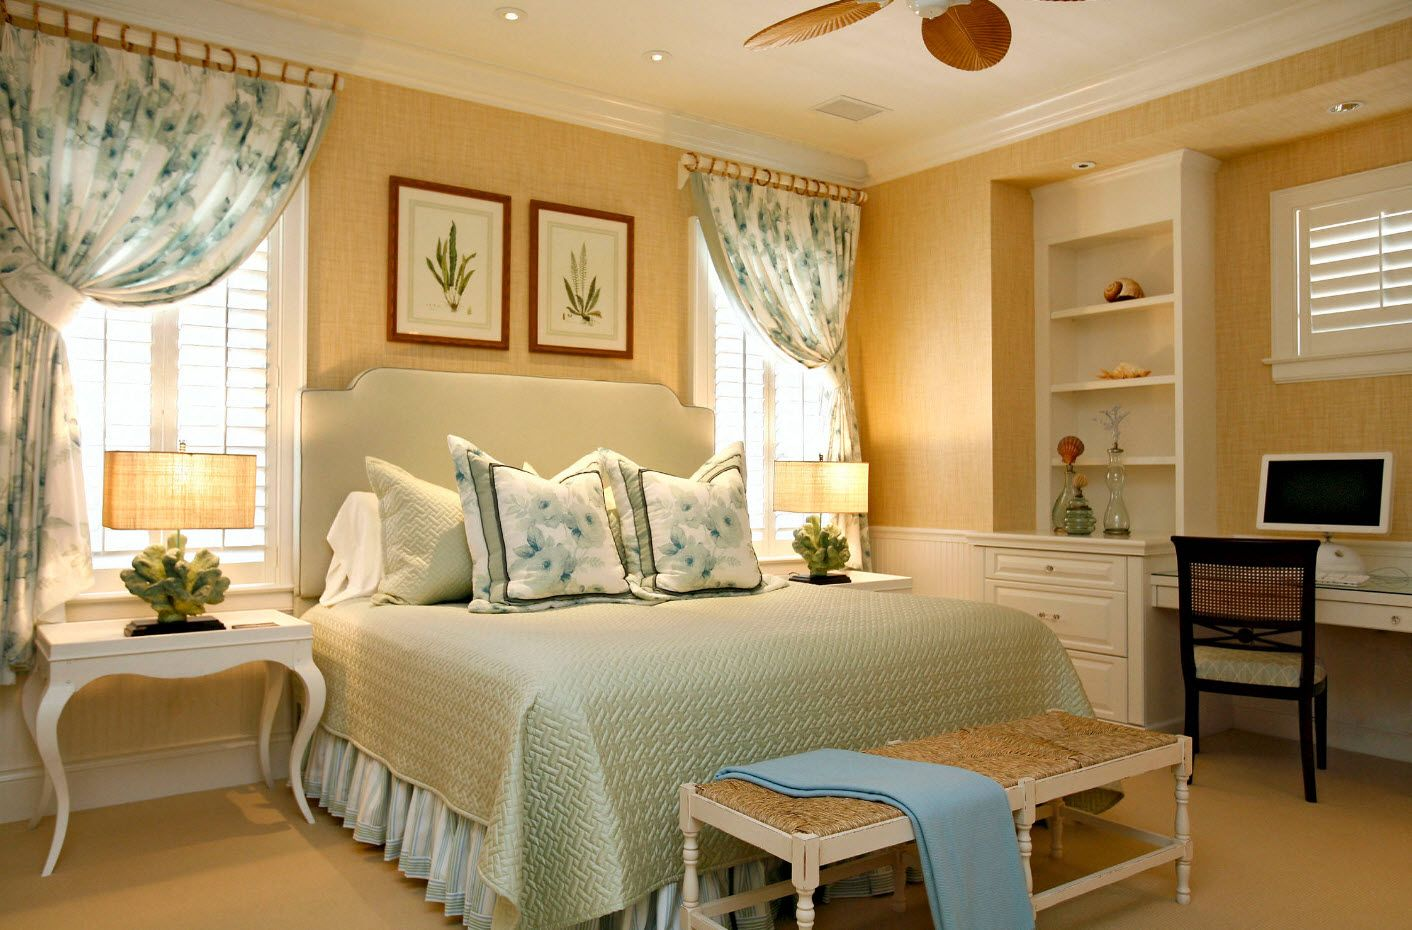 A little girlish bedroomwith peach and turquoise color touches and ruches; white storage shelves